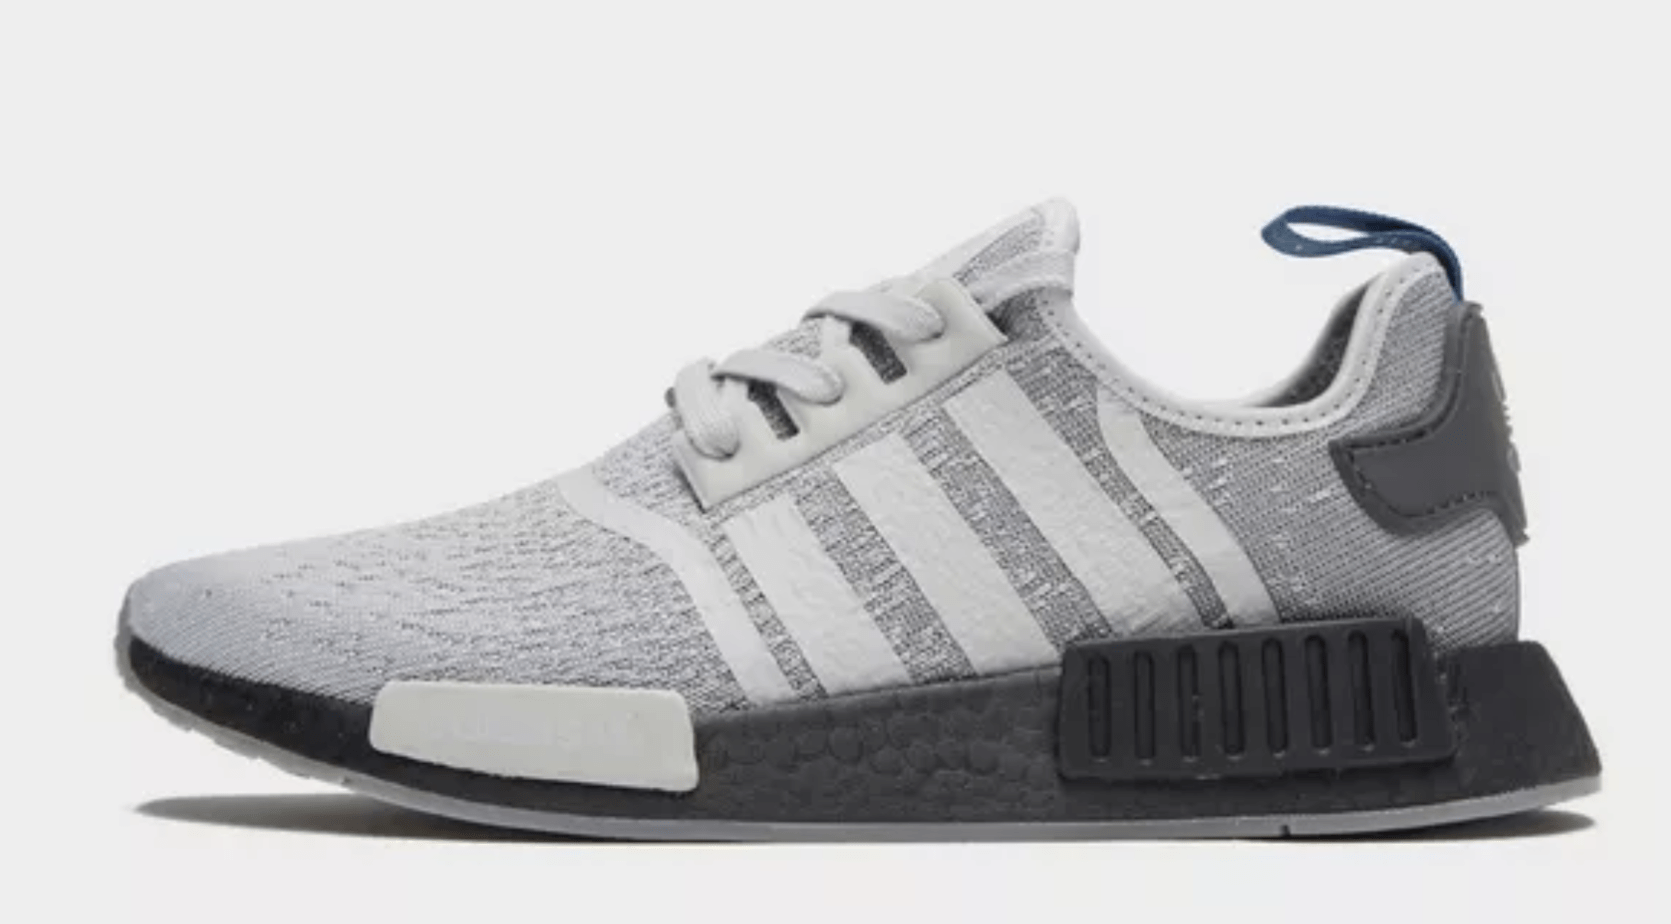 a77739d935519 adidas NMD R1 JD Exclusive Release Date  Available Now Price   130. Color   Grey Two Grey Three Core Black